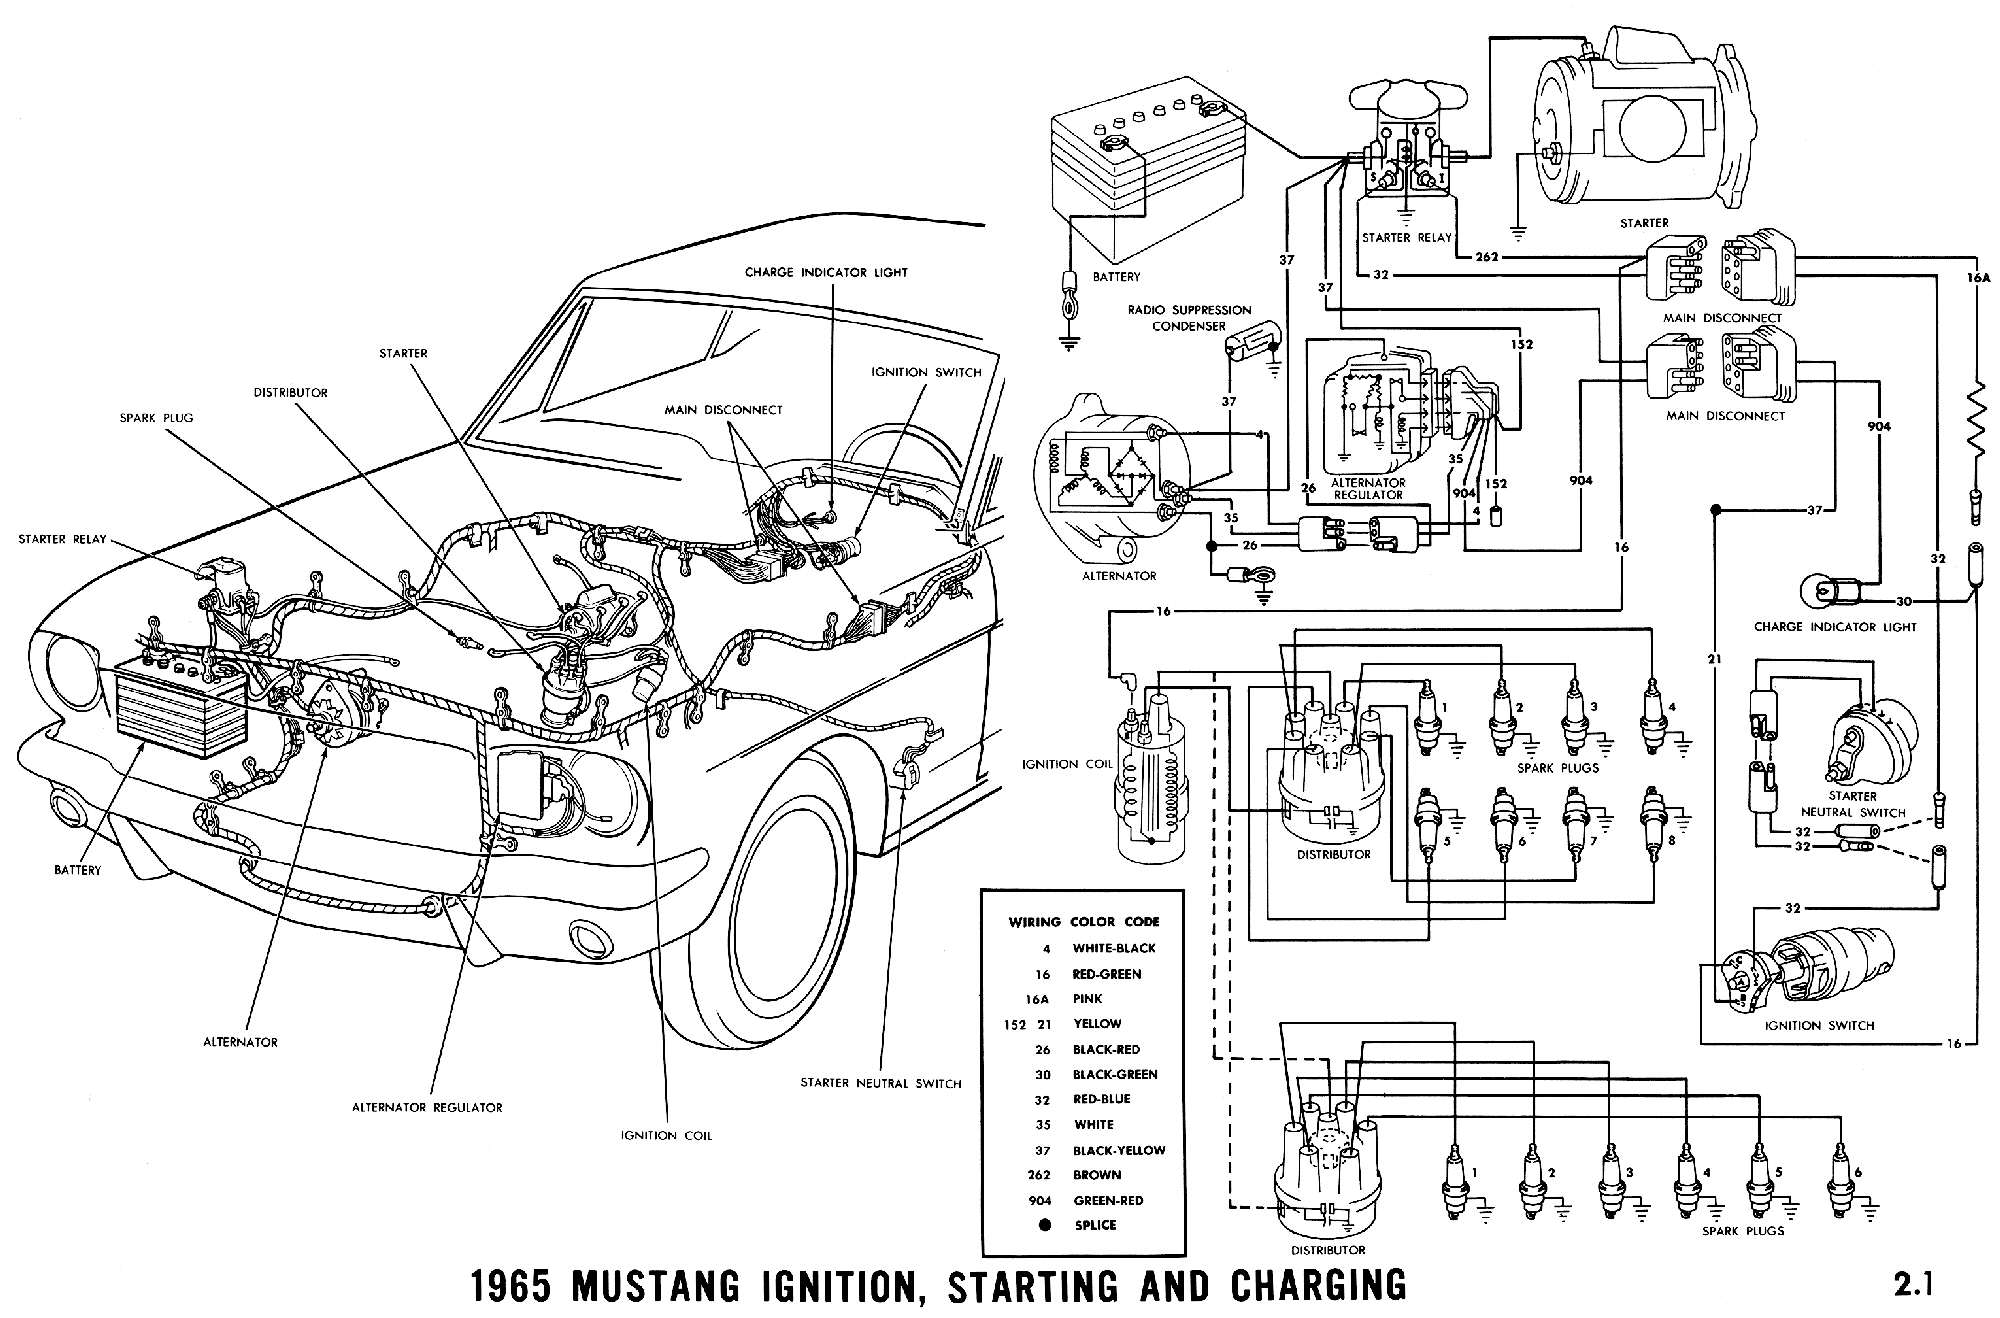 1965 Mustang Alt Warning Light Stays On on 1970 chevy ignition wiring diagram